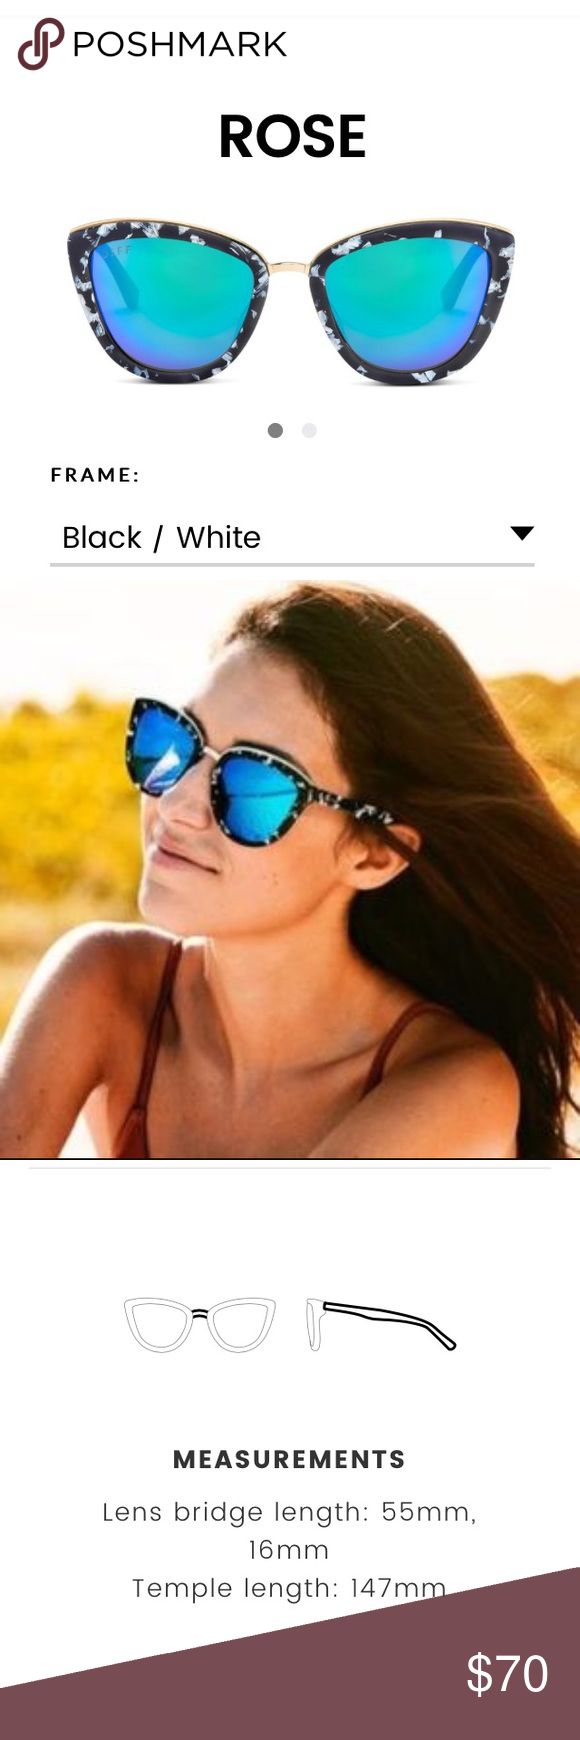 a409b5b2a7e Diff eyewear sunglasses rose BNWT Brand new with box! Never worn! These are  more of a blue and purple lense than in photo above  let me know if you  have any ...